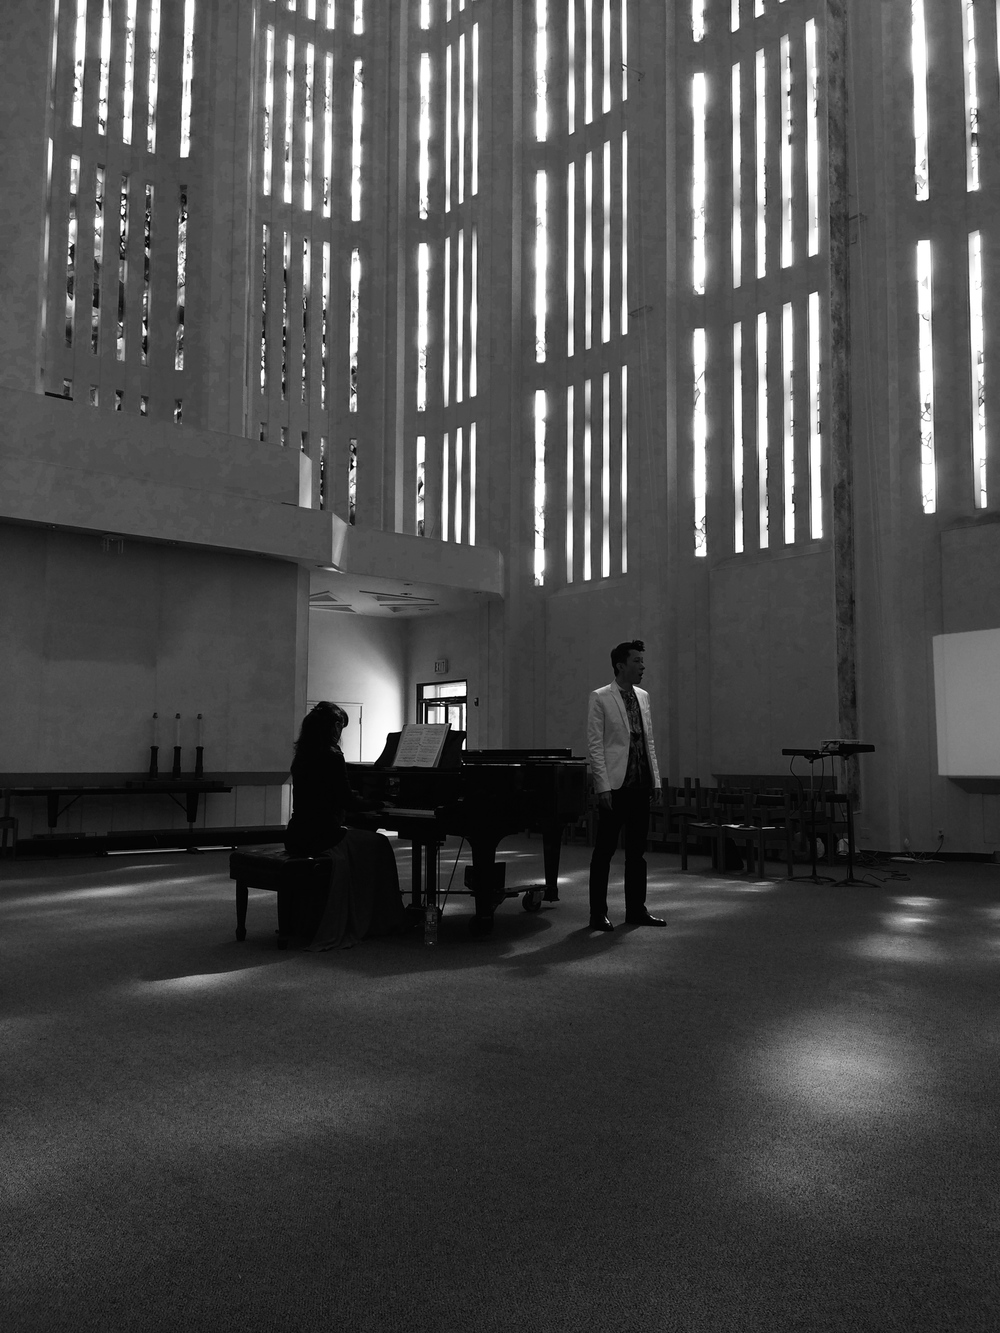 Kresge Chapel Performance. Photo by PL